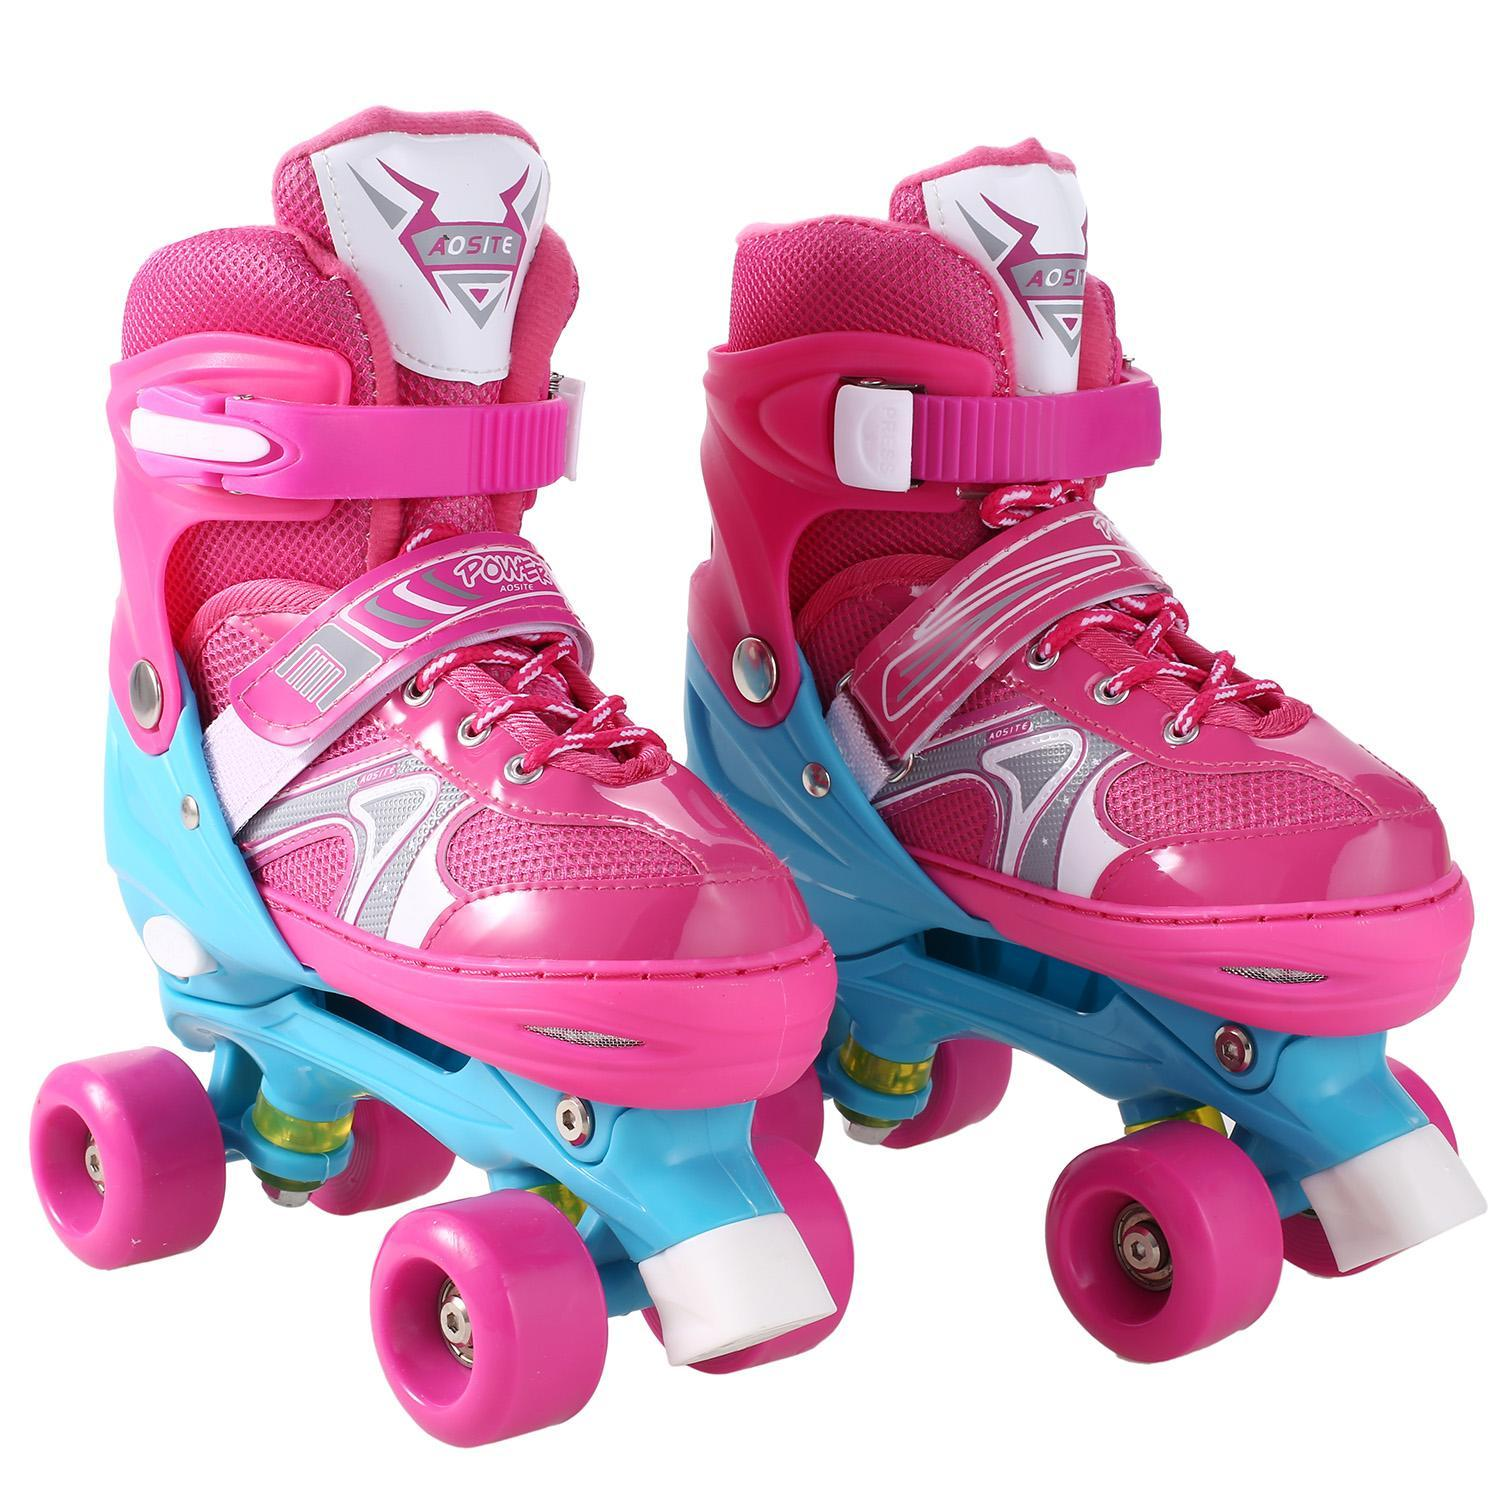 Kimimart Adjustable Kids Roller Skates PVC Wheel Triple Lock Mesh Breathable Rollerblades For Beginners/Toddlers/Children/Boys/Girls